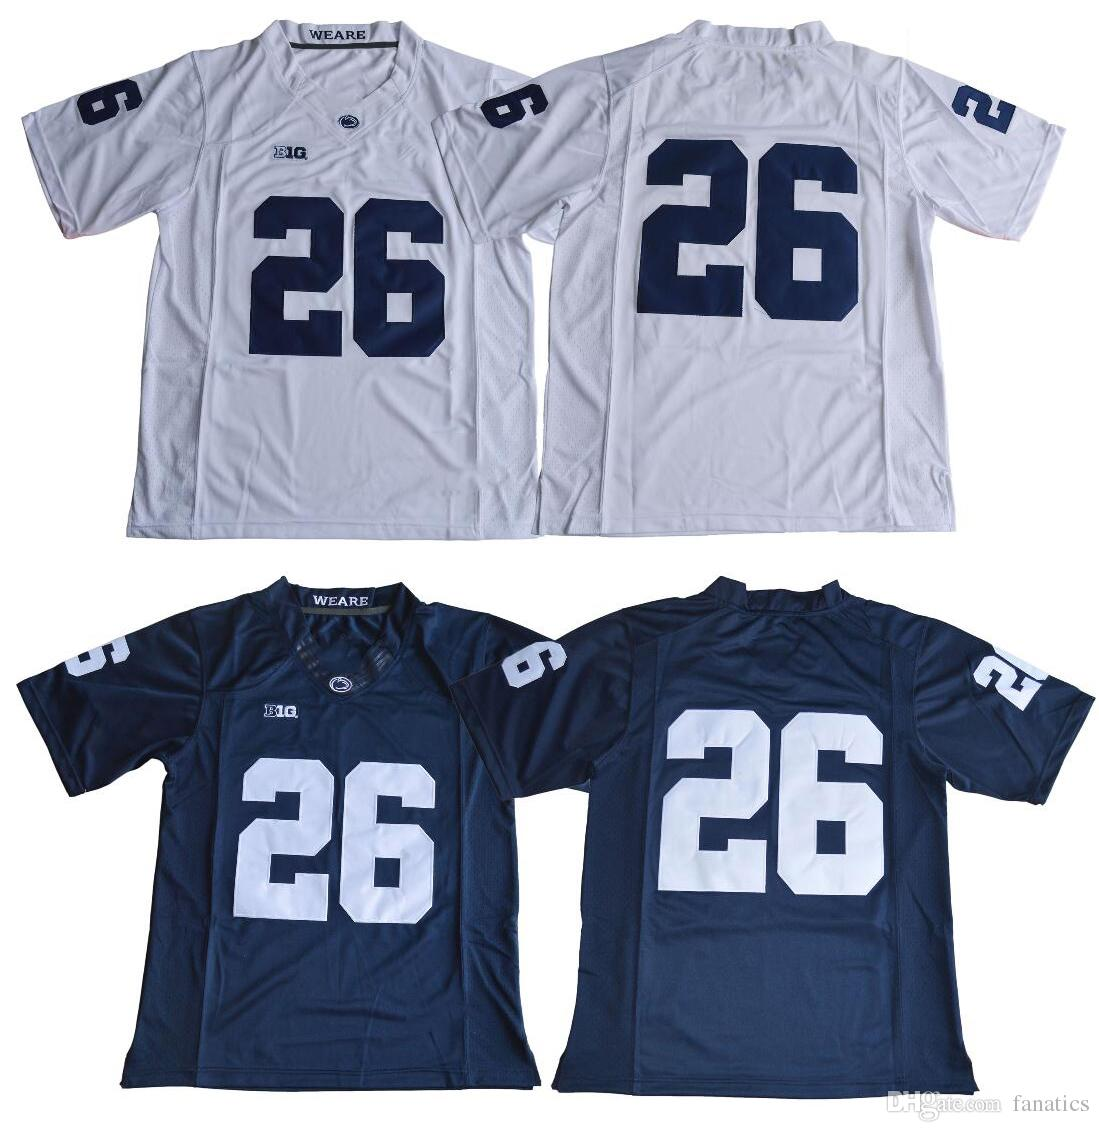 9ded39289 Cheap Mens 26 Saquon Barkley 2017 Penn State Nittany Lions No Name Navy  Blue White College Football Jerseys Stitched S XXXL UK 2019 From Fanatics